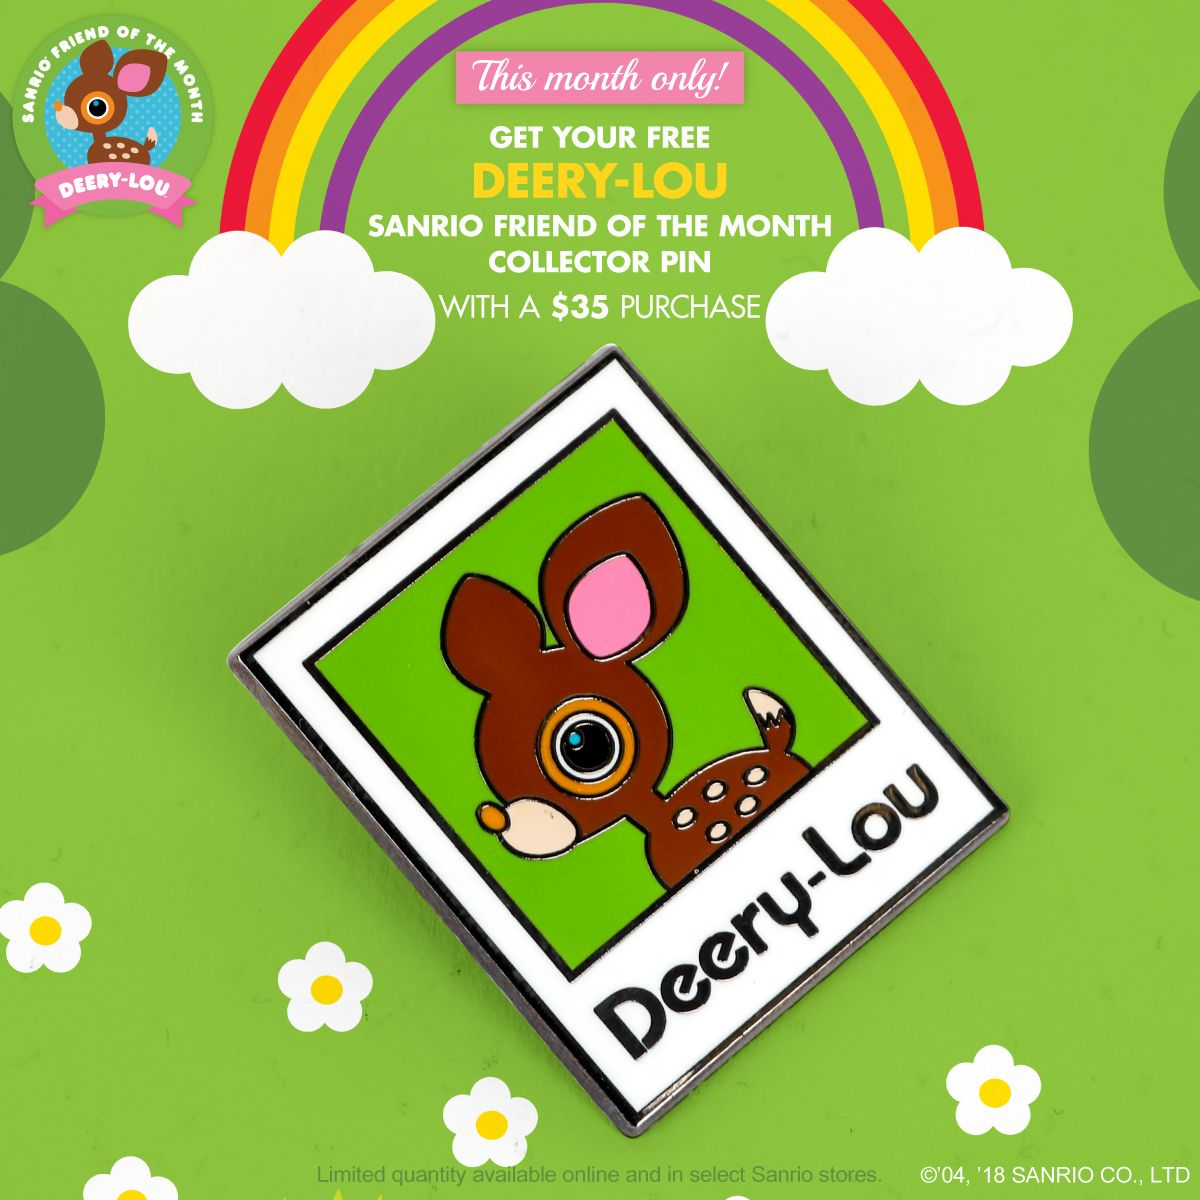 43c617310 Get a Deery-Lou Friend of the Month Collector Pin with a $35+ Purchase.  This month only.